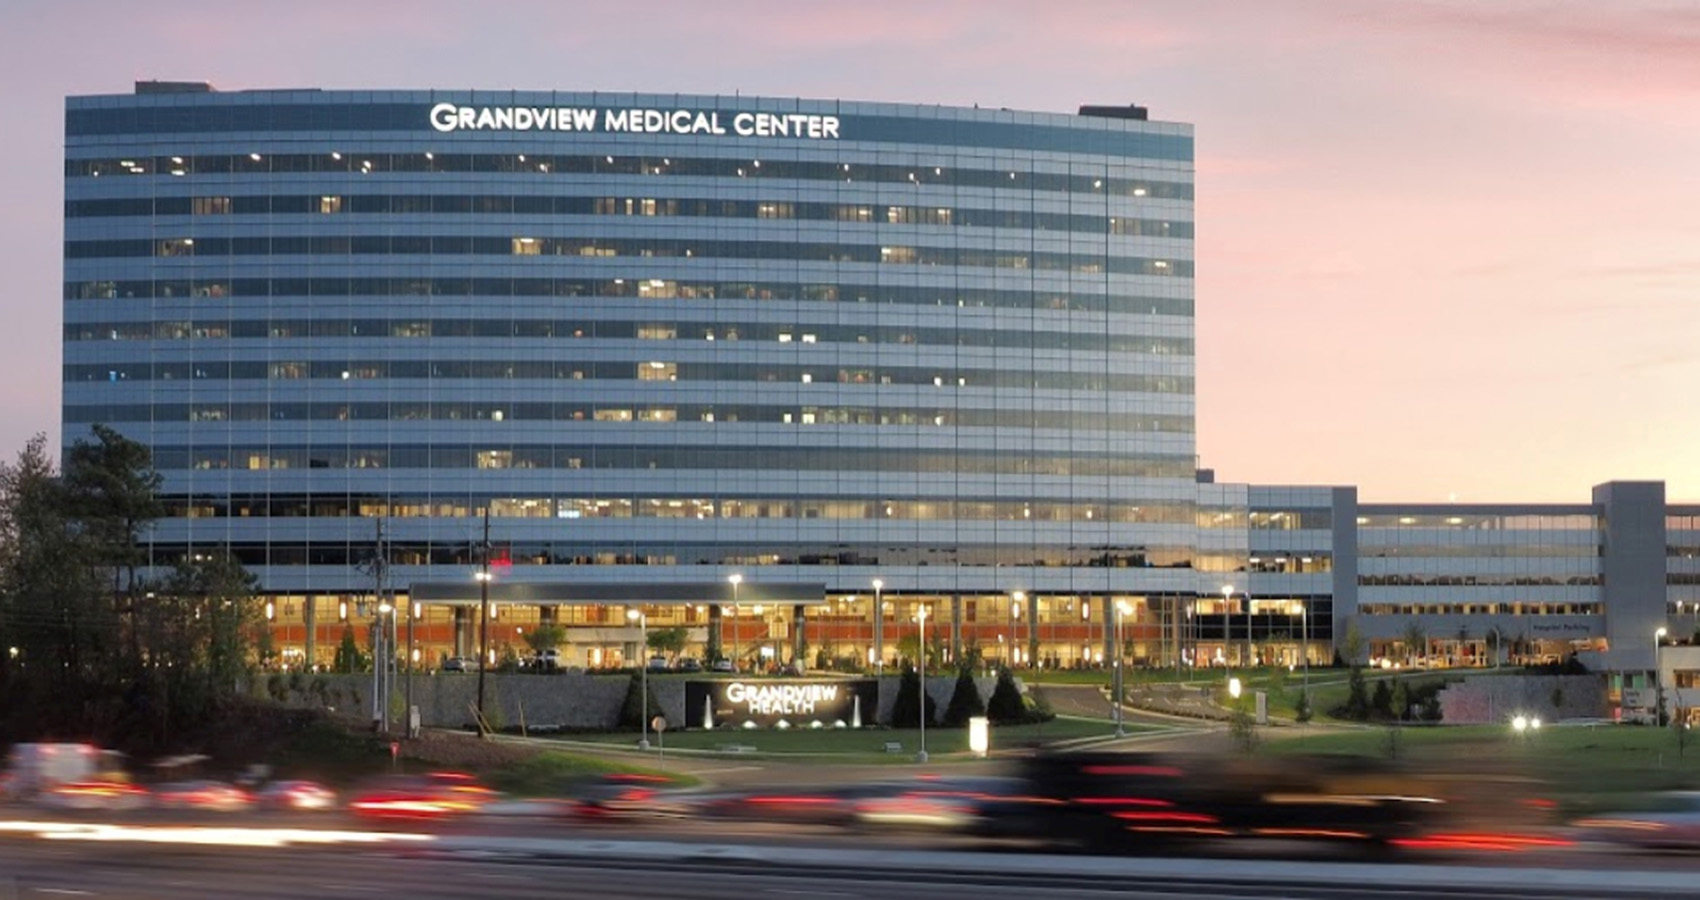 Daniel Corporation - Grandview Medical Center